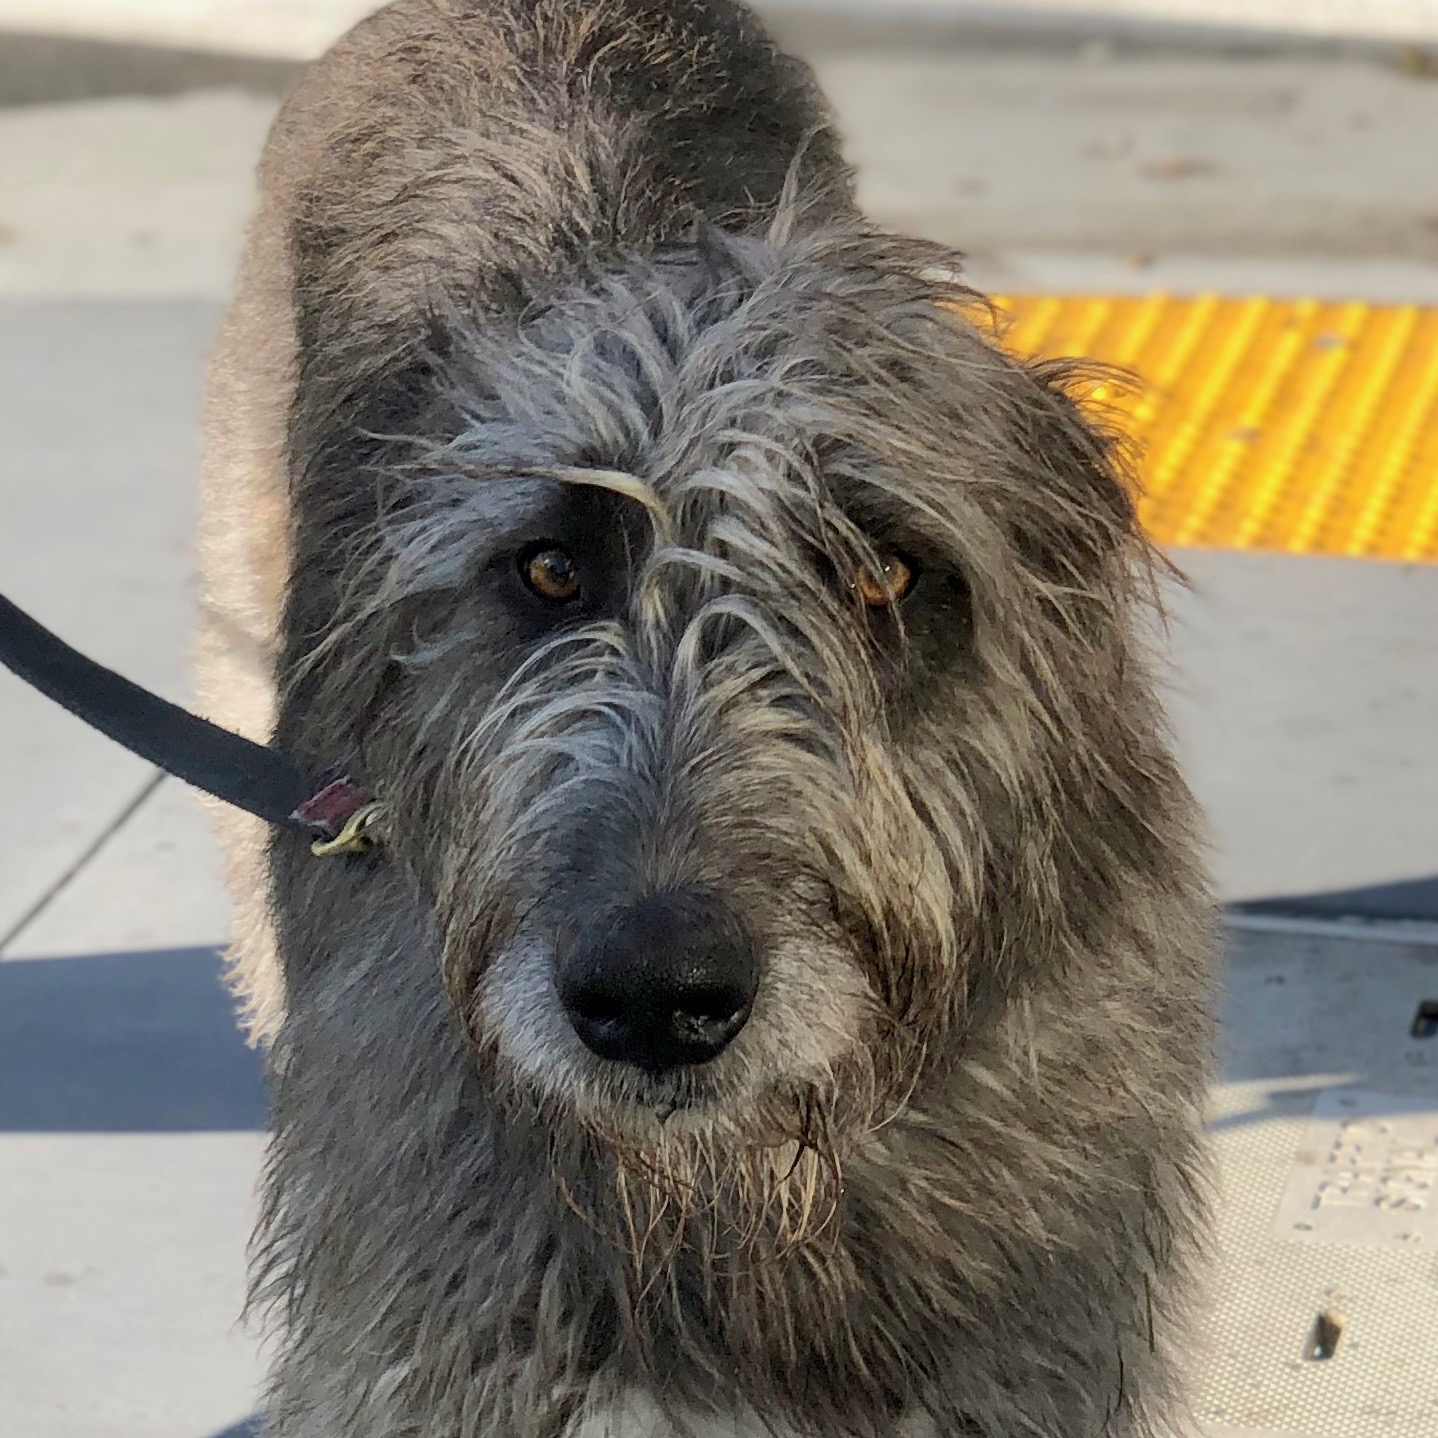 Soulful-Looking Irish Wolfhound